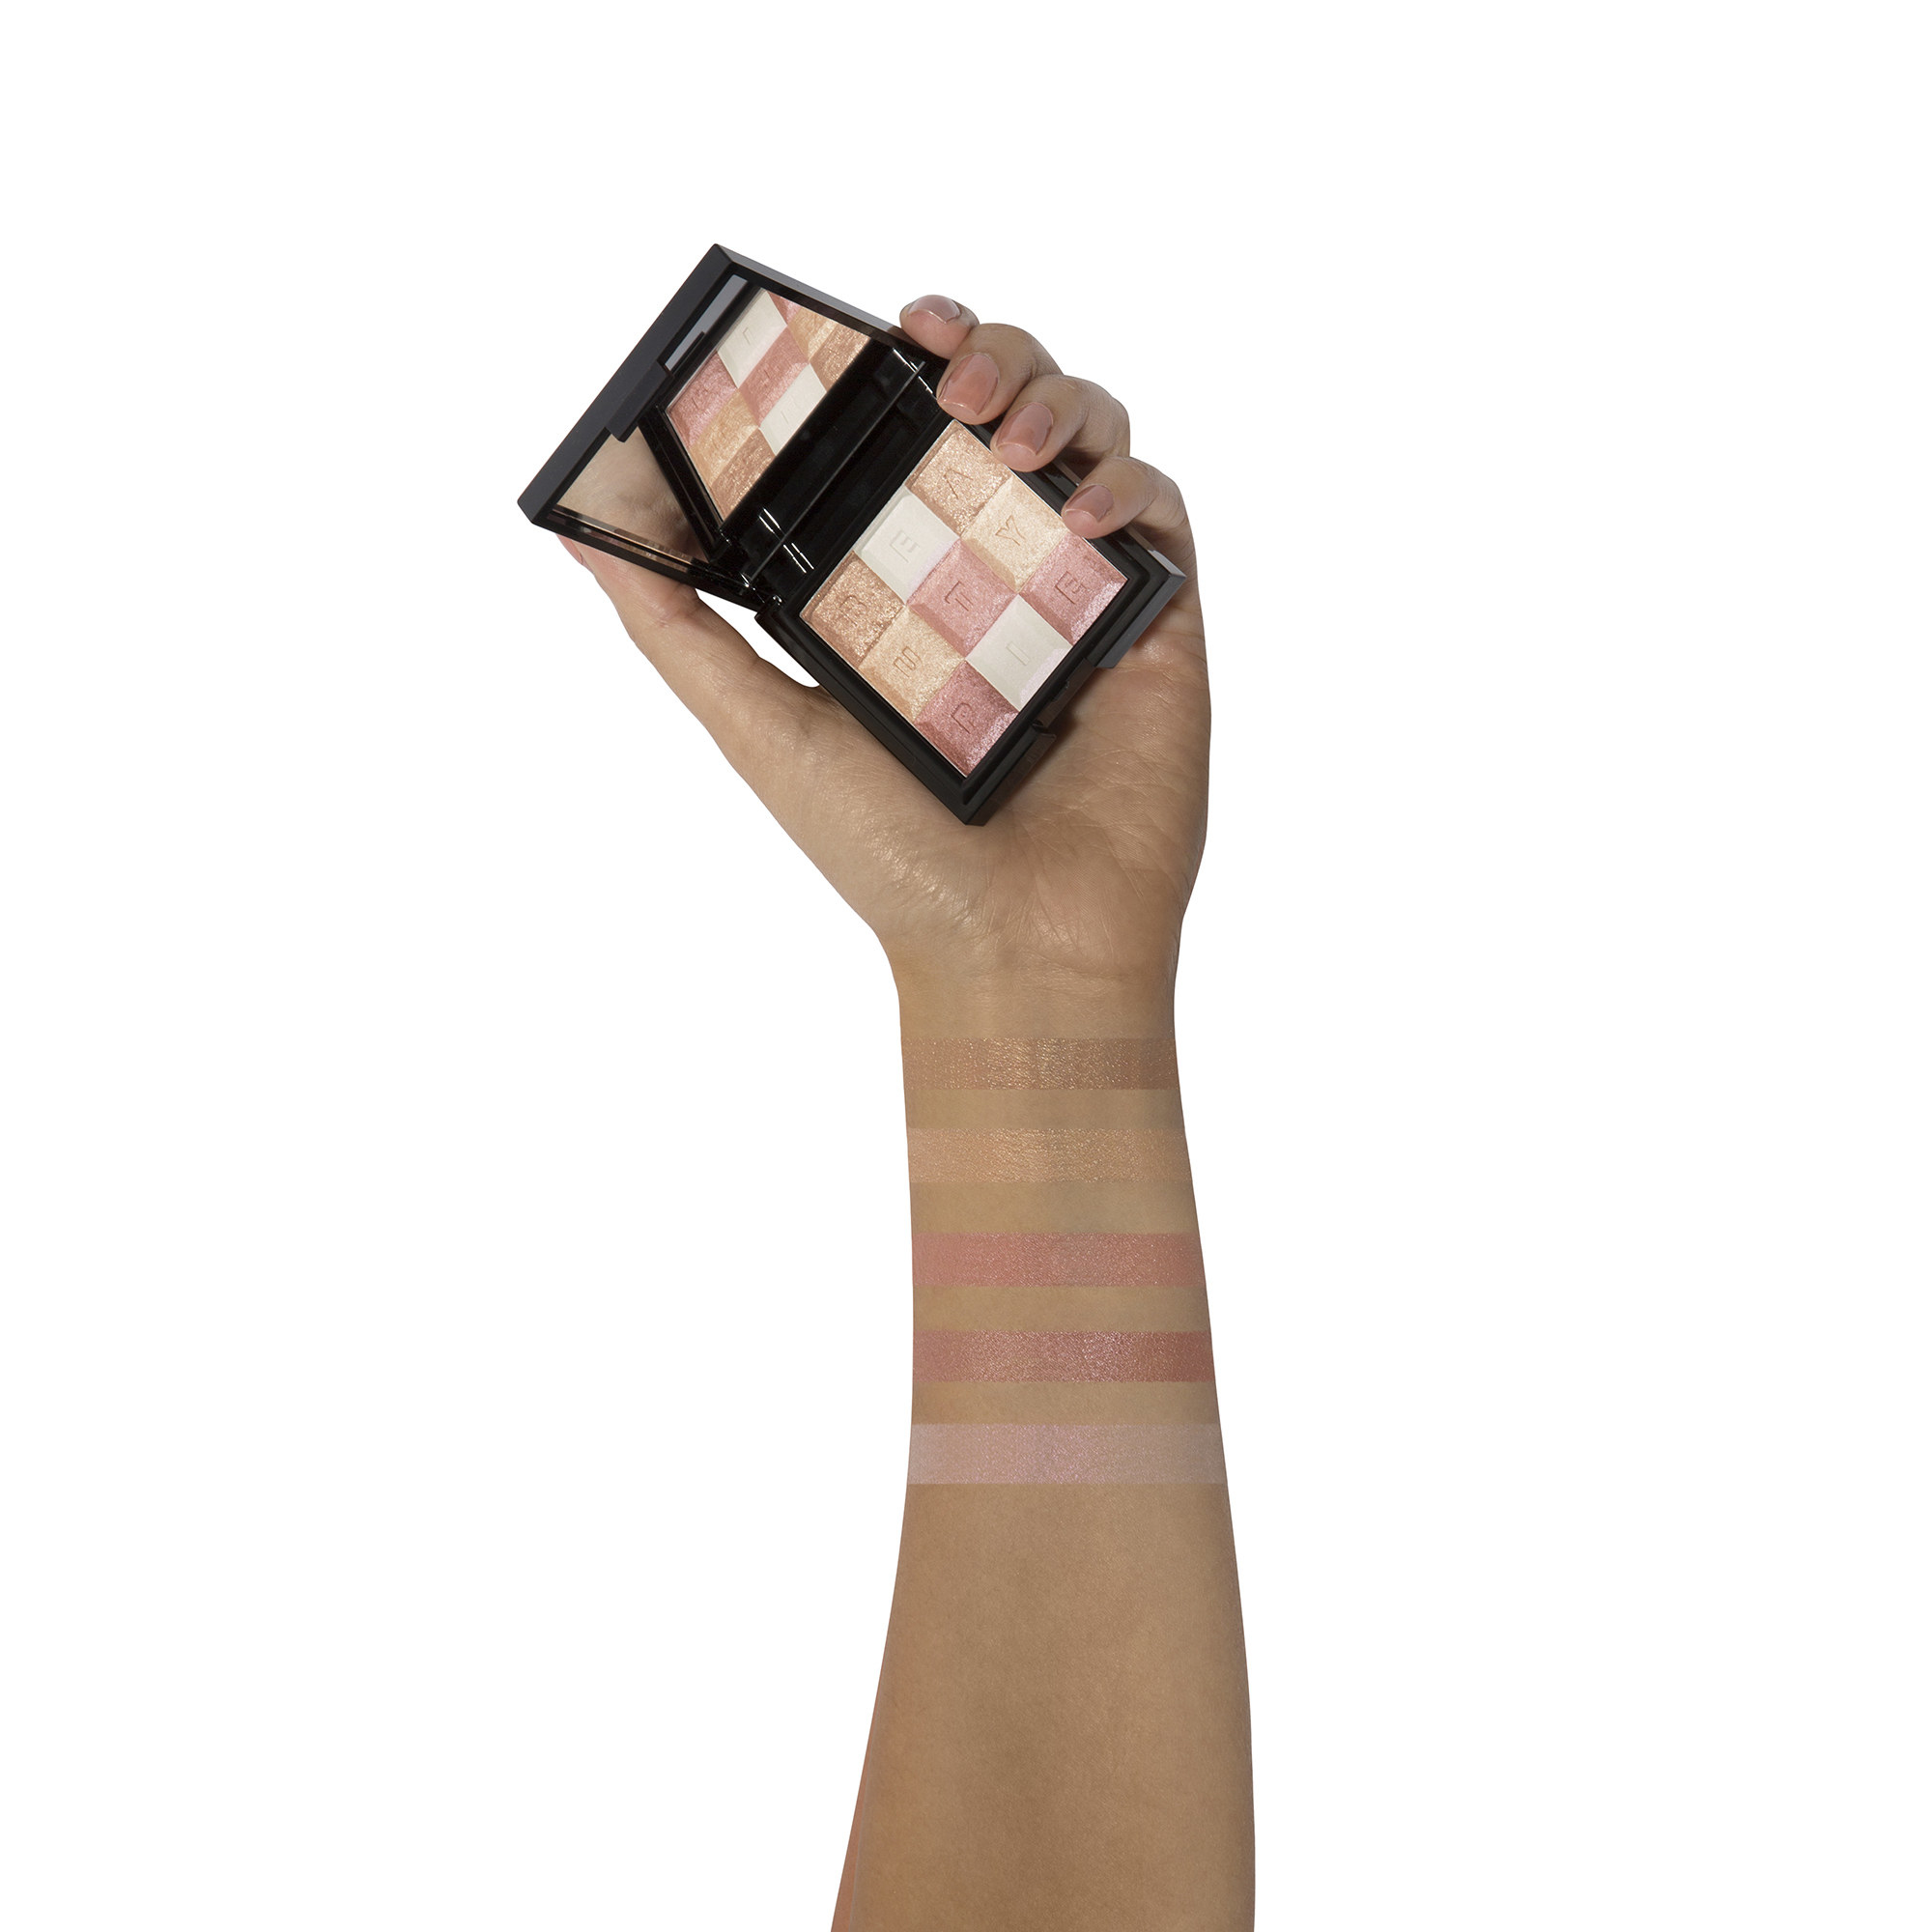 Shimmerbar Highlighter swatches on wrist